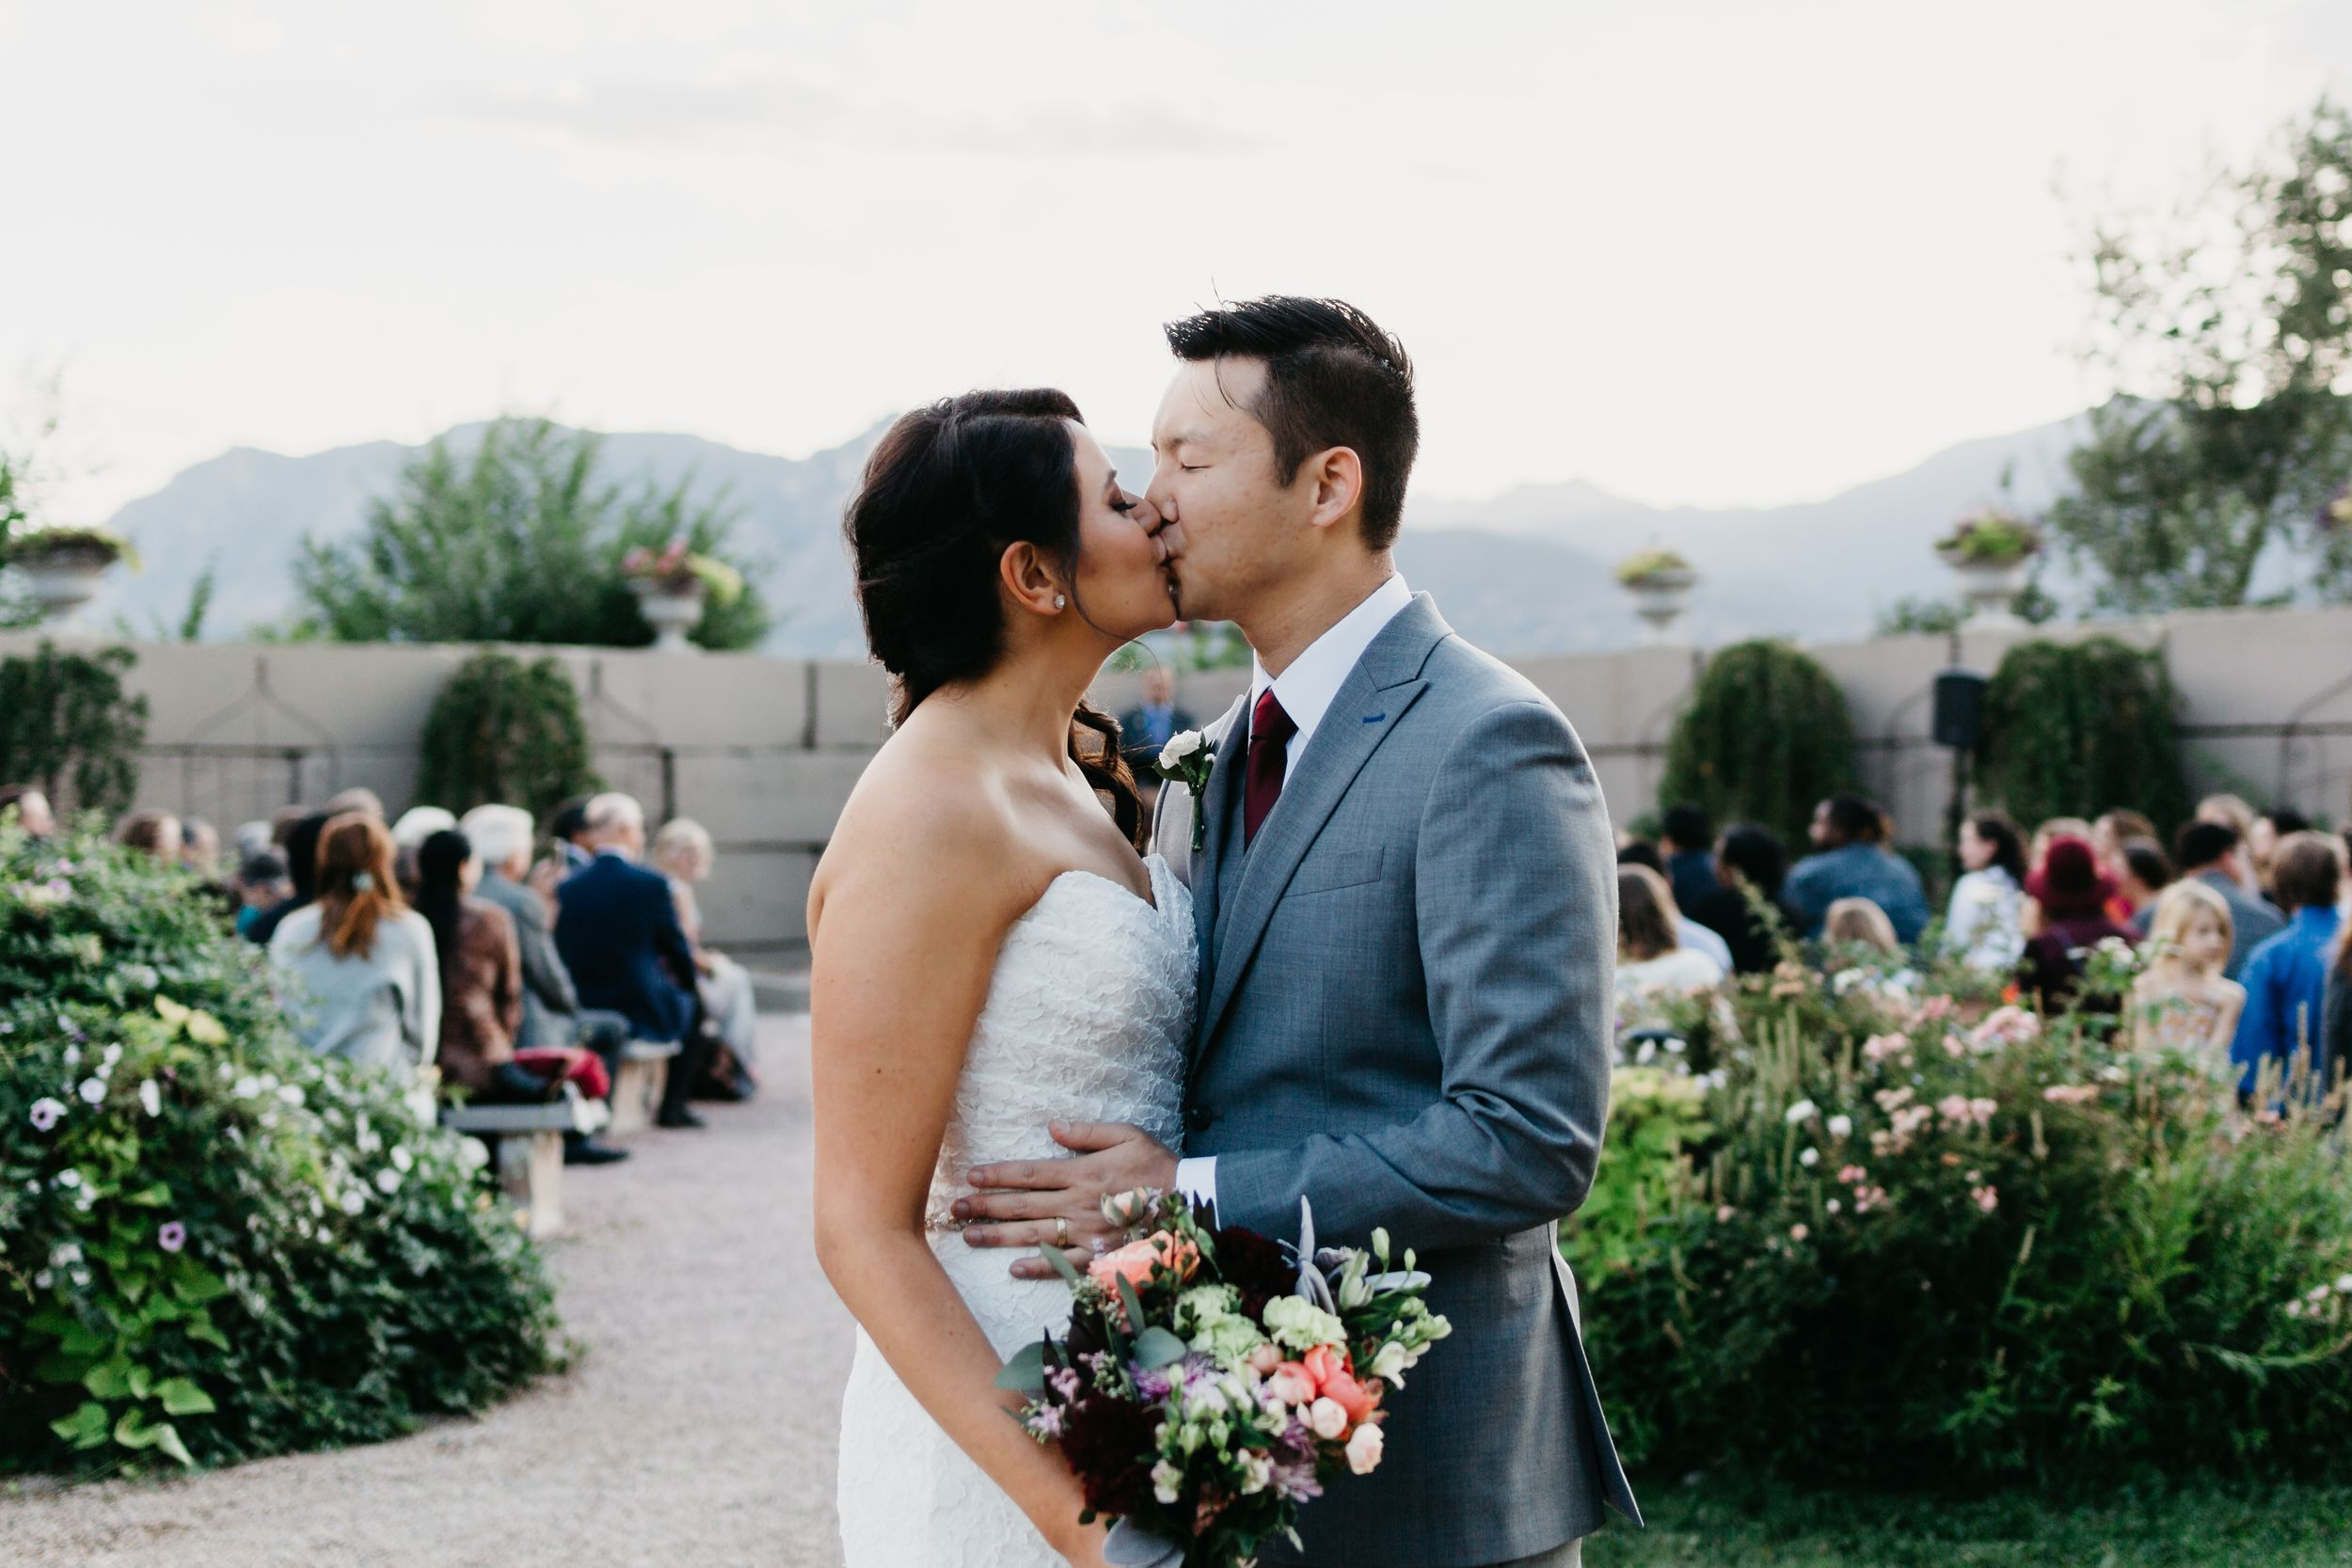 Hillside gardens Colorado Springs, Colorado wedding venues, best colorado wedding photographer,